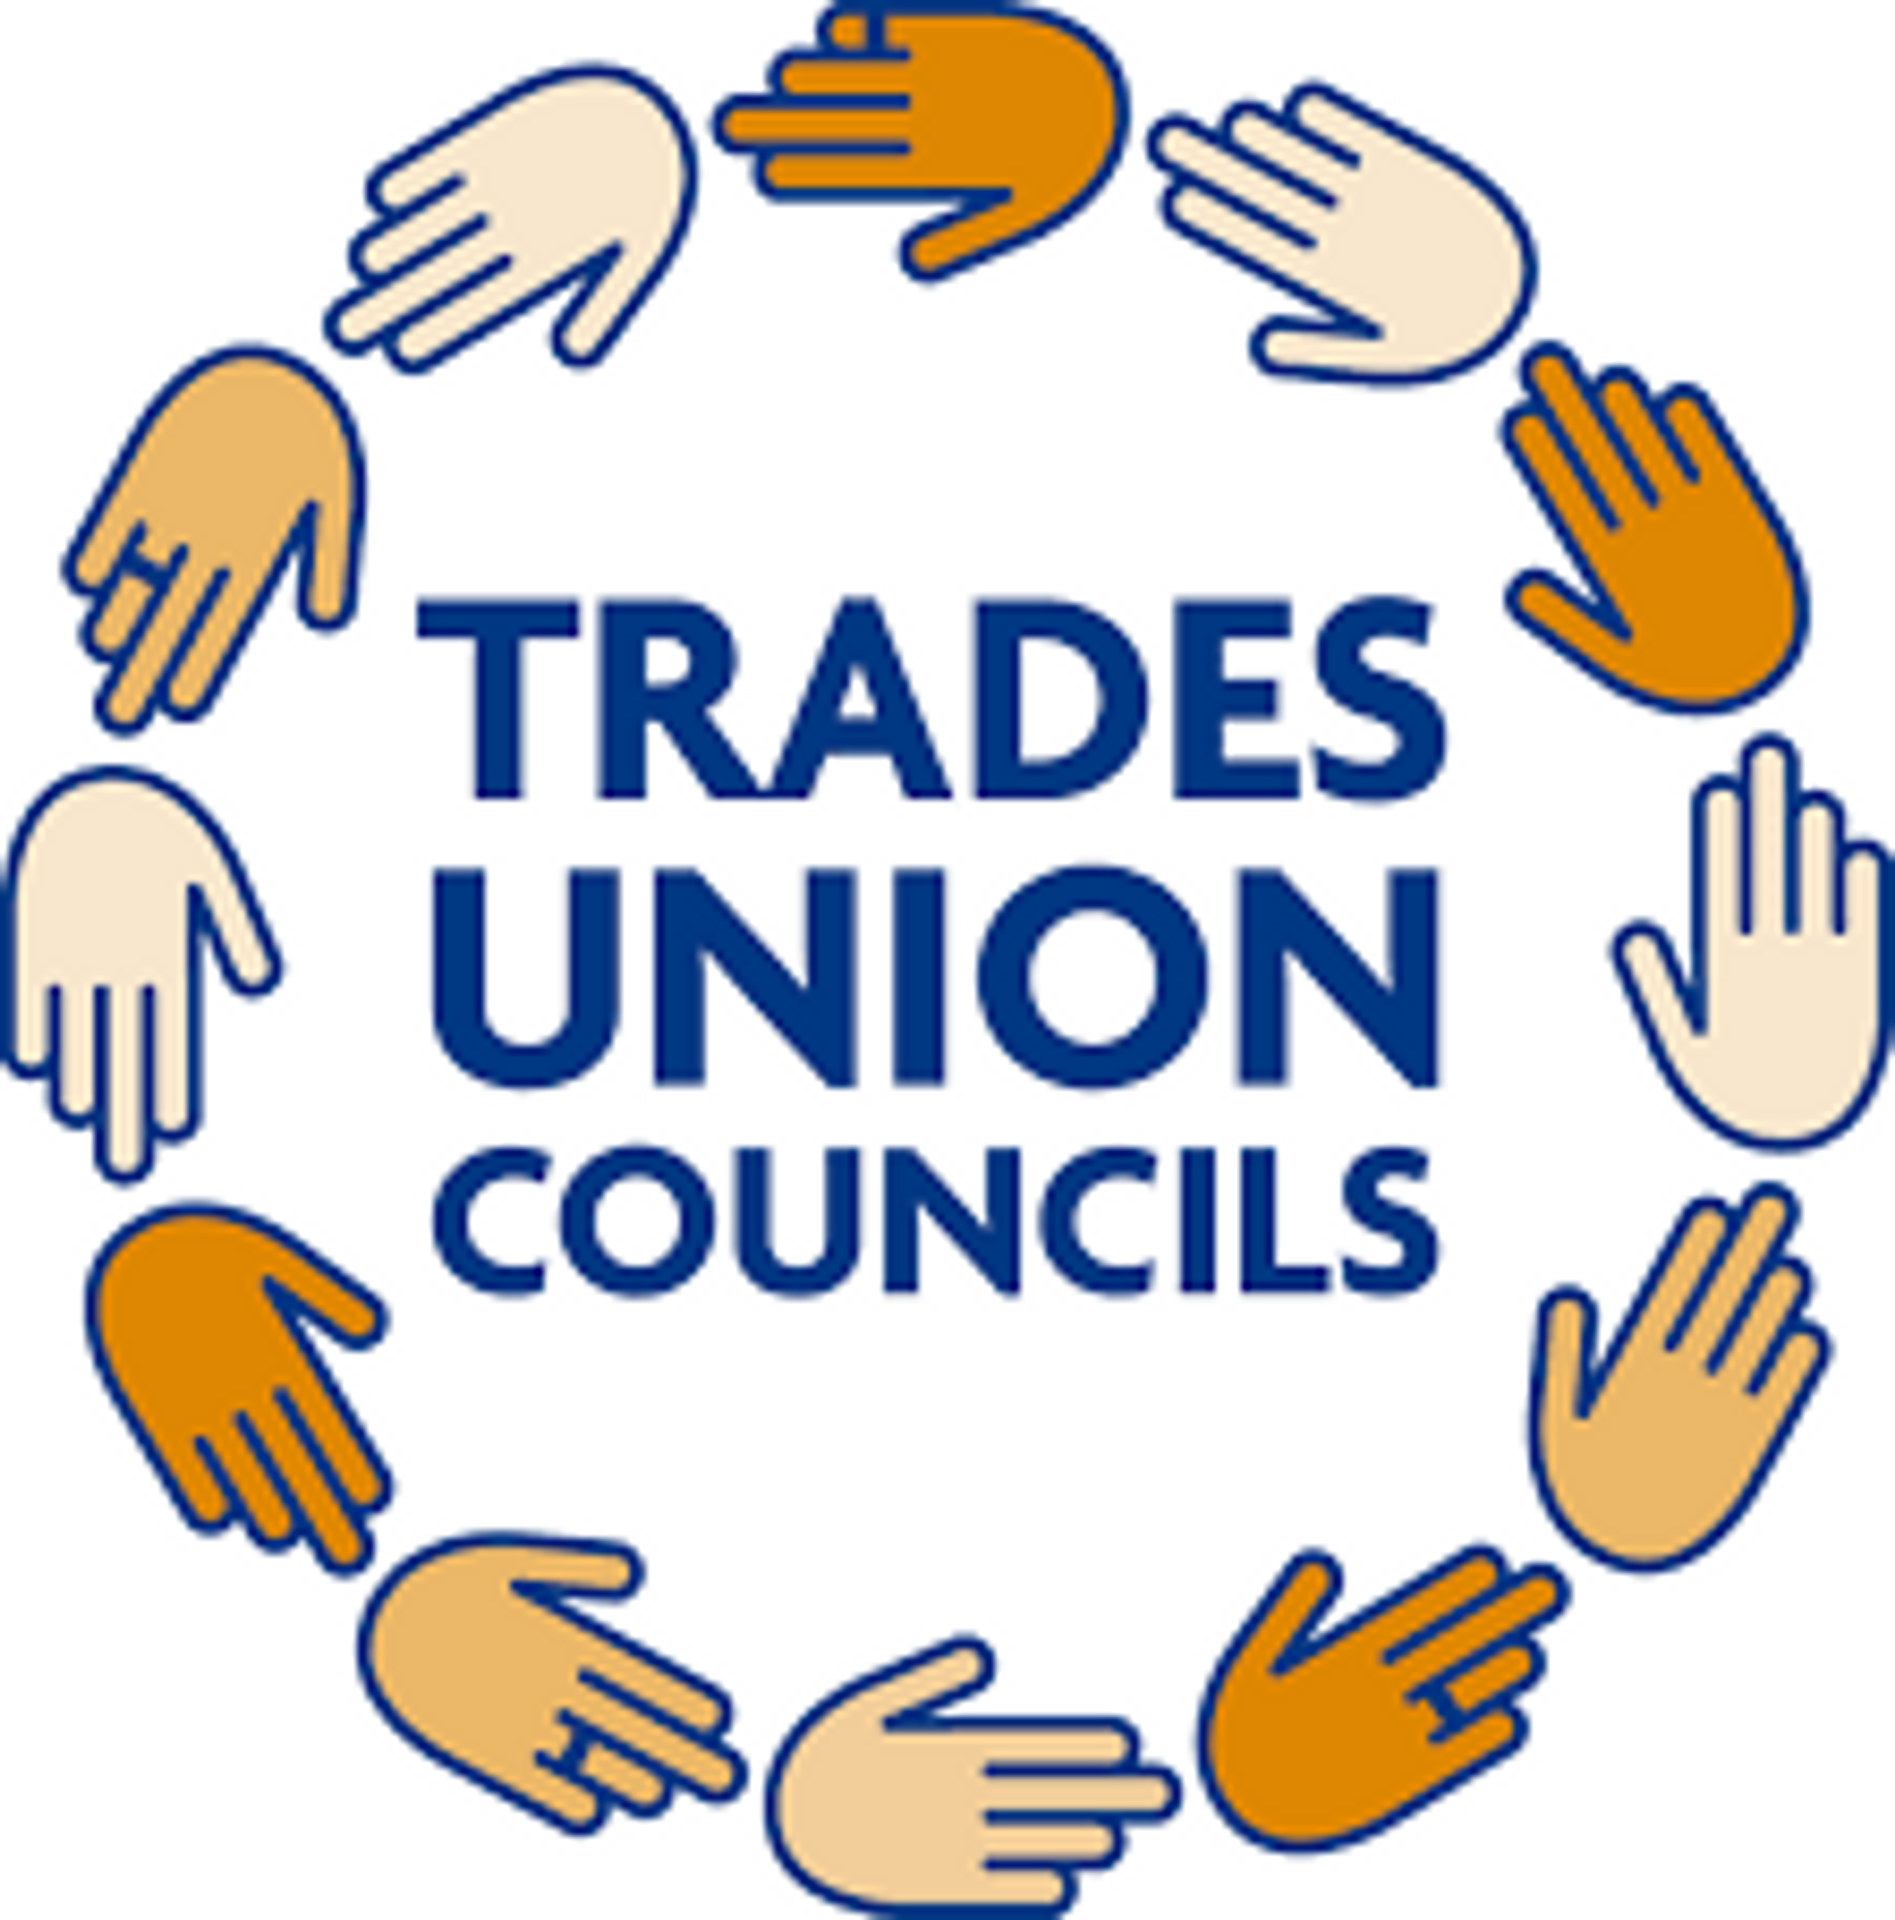 Shropshire & Telford Trade Union Council